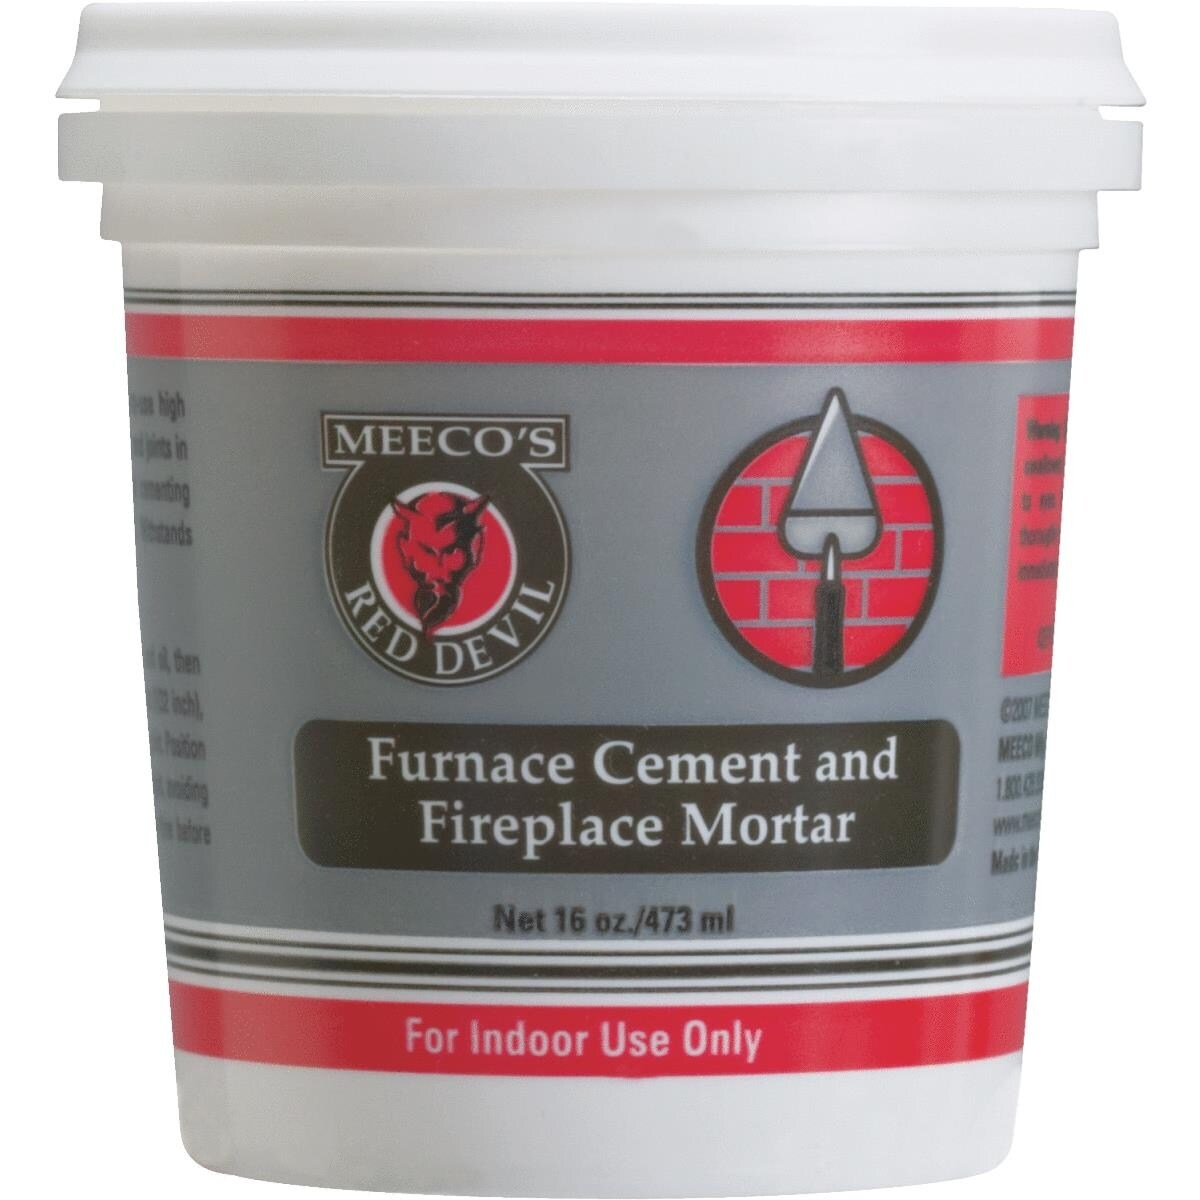 Shop Meecos Red Devil Pt Furnace Cement Free Shipping On Orders